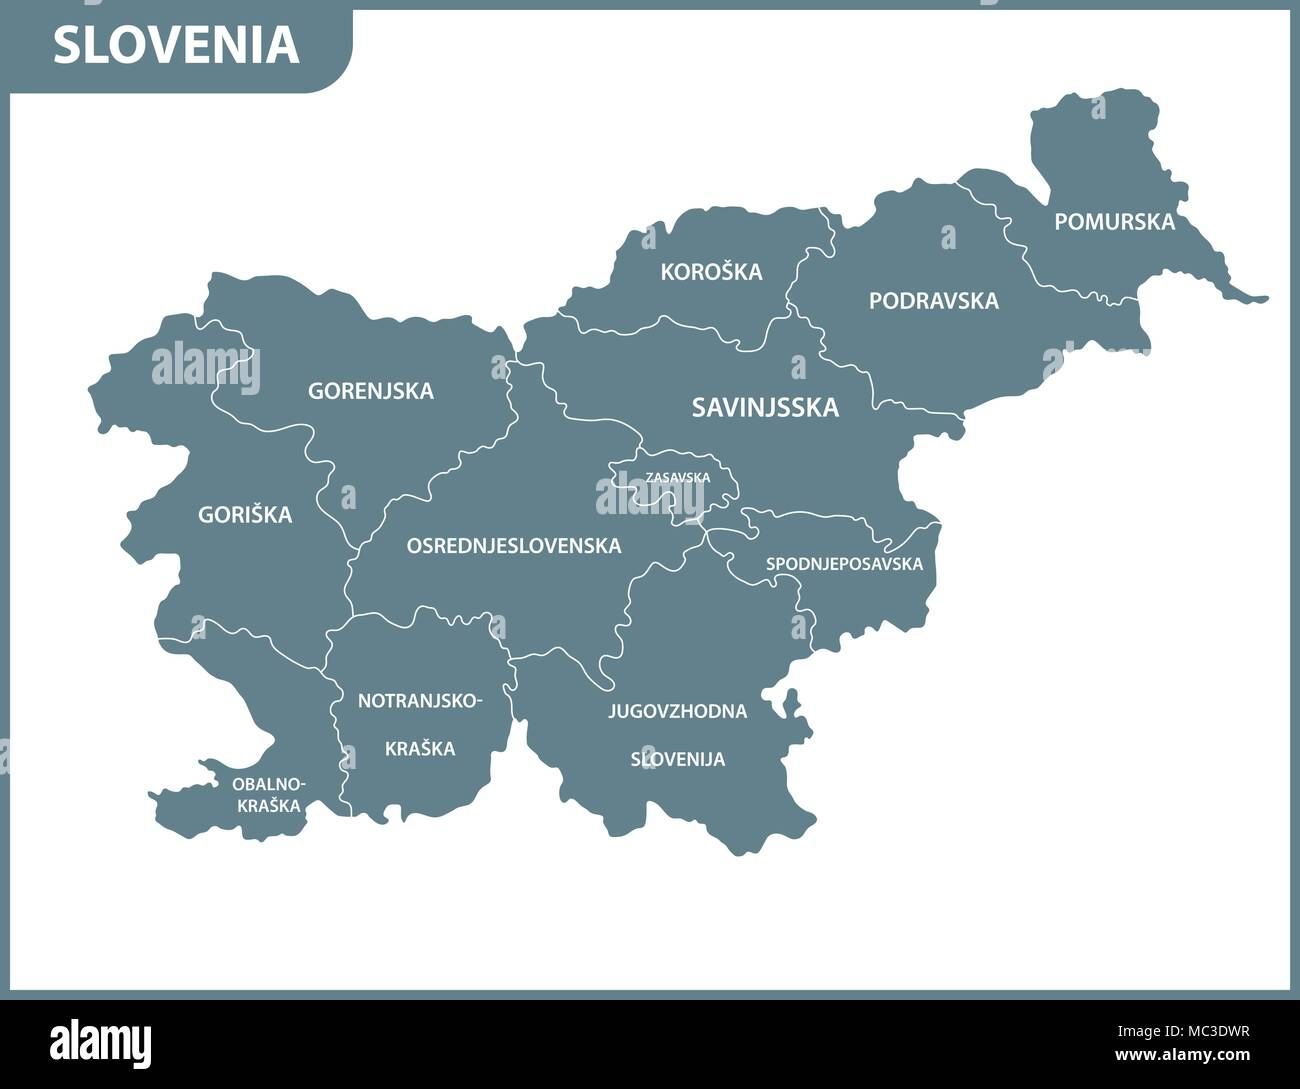 The detailed map of Slovenia with regions or states Administrative